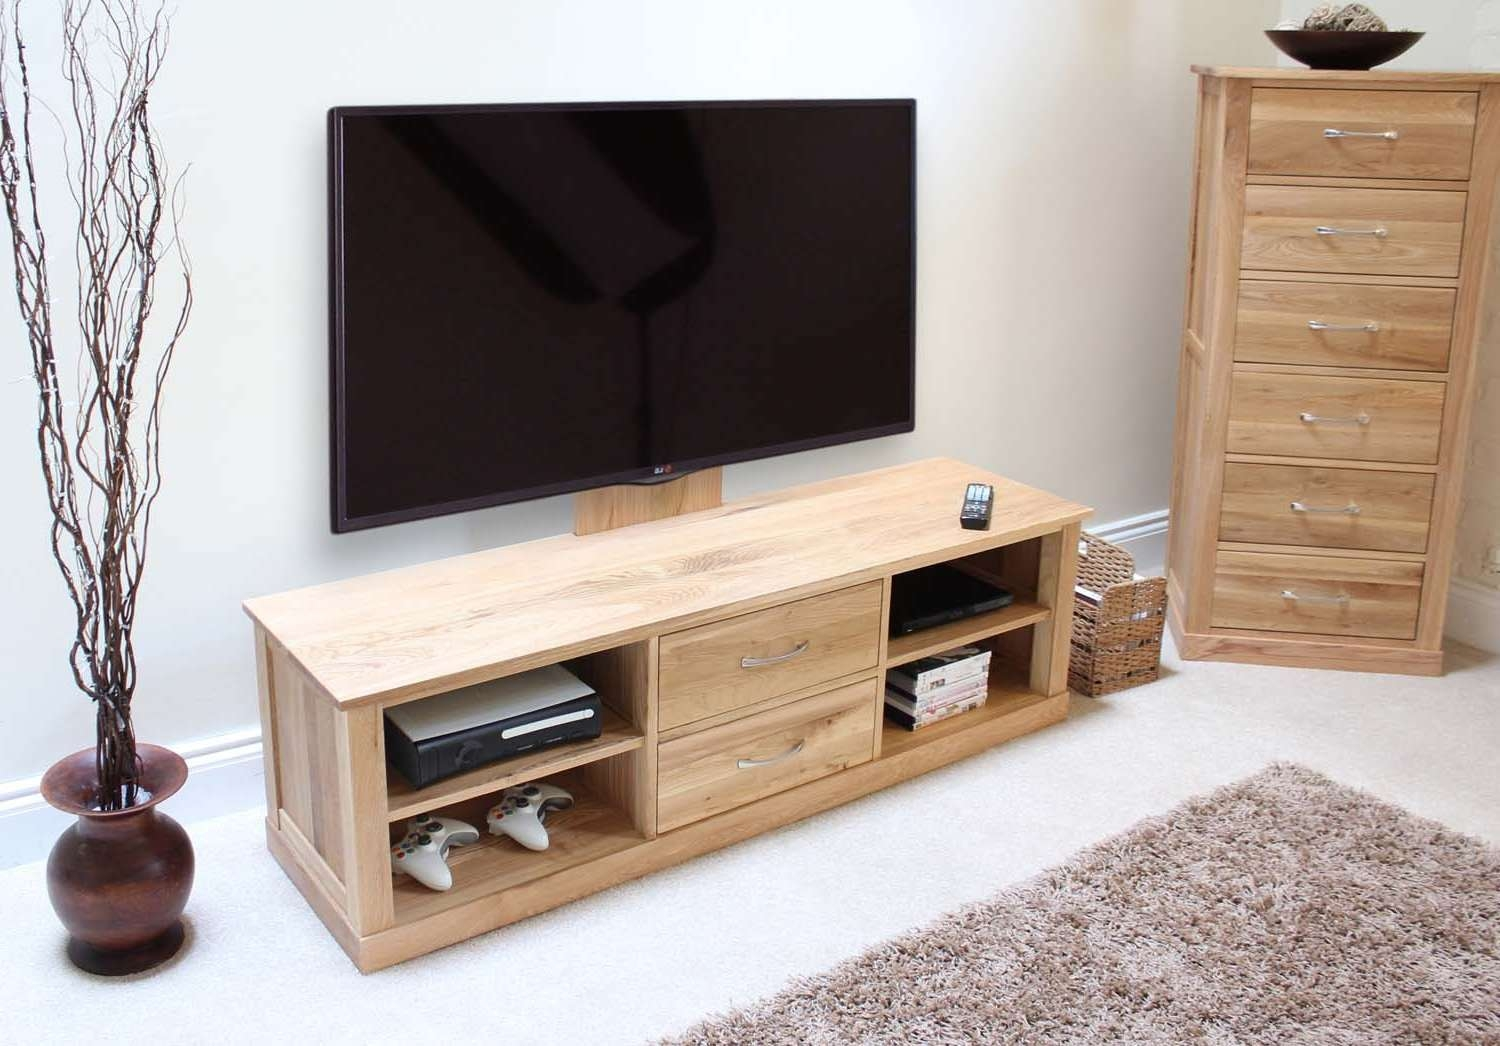 Modern Light Oak Tv Units | Solid Oak Furniture Online – Zurleys Uk Throughout Light Oak Tv Cabinets (View 18 of 20)